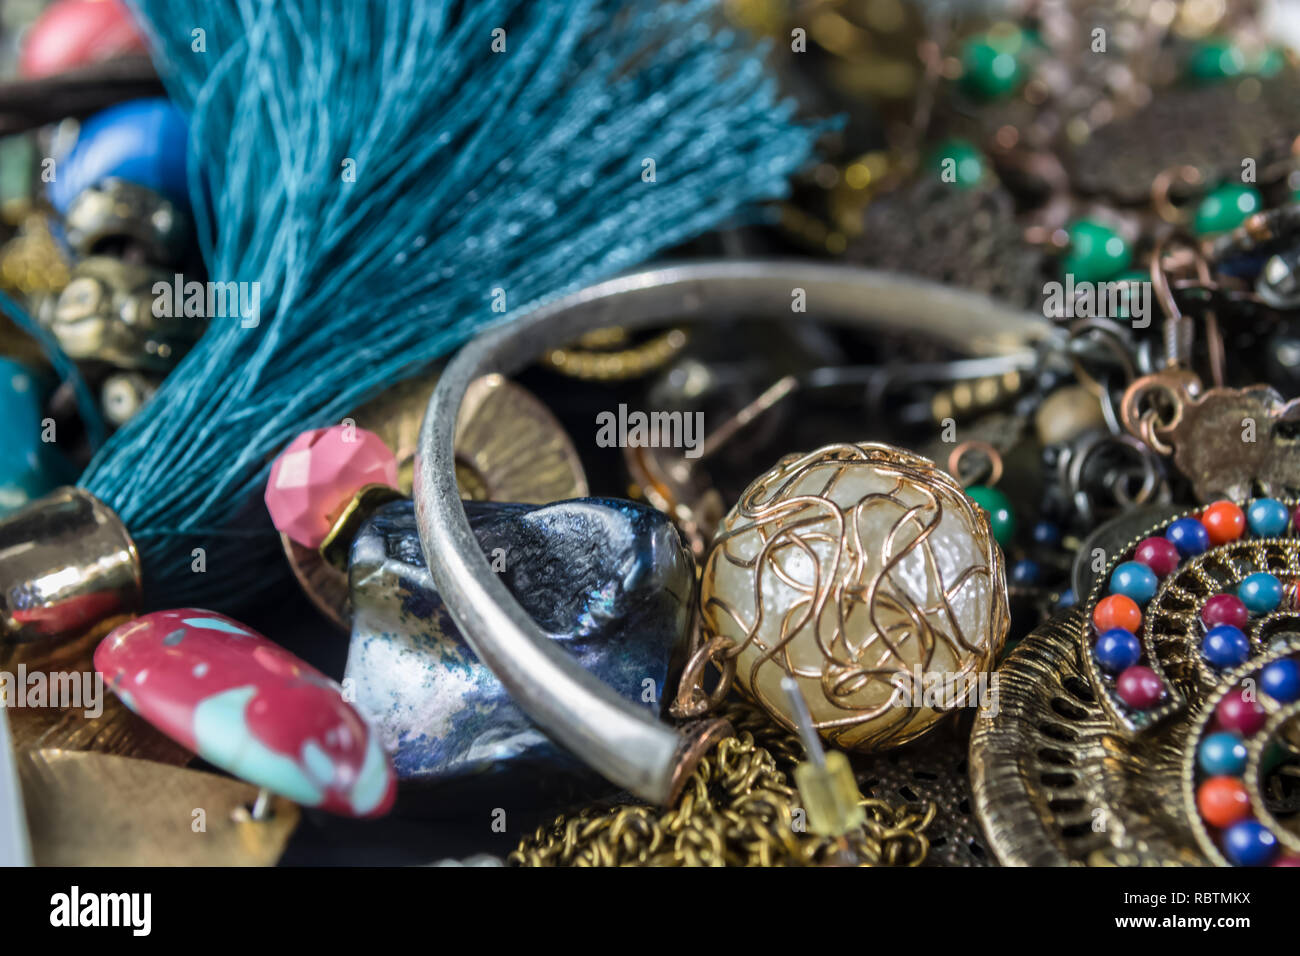 Jewelry Boutique Stock Photos & Jewelry Boutique Stock